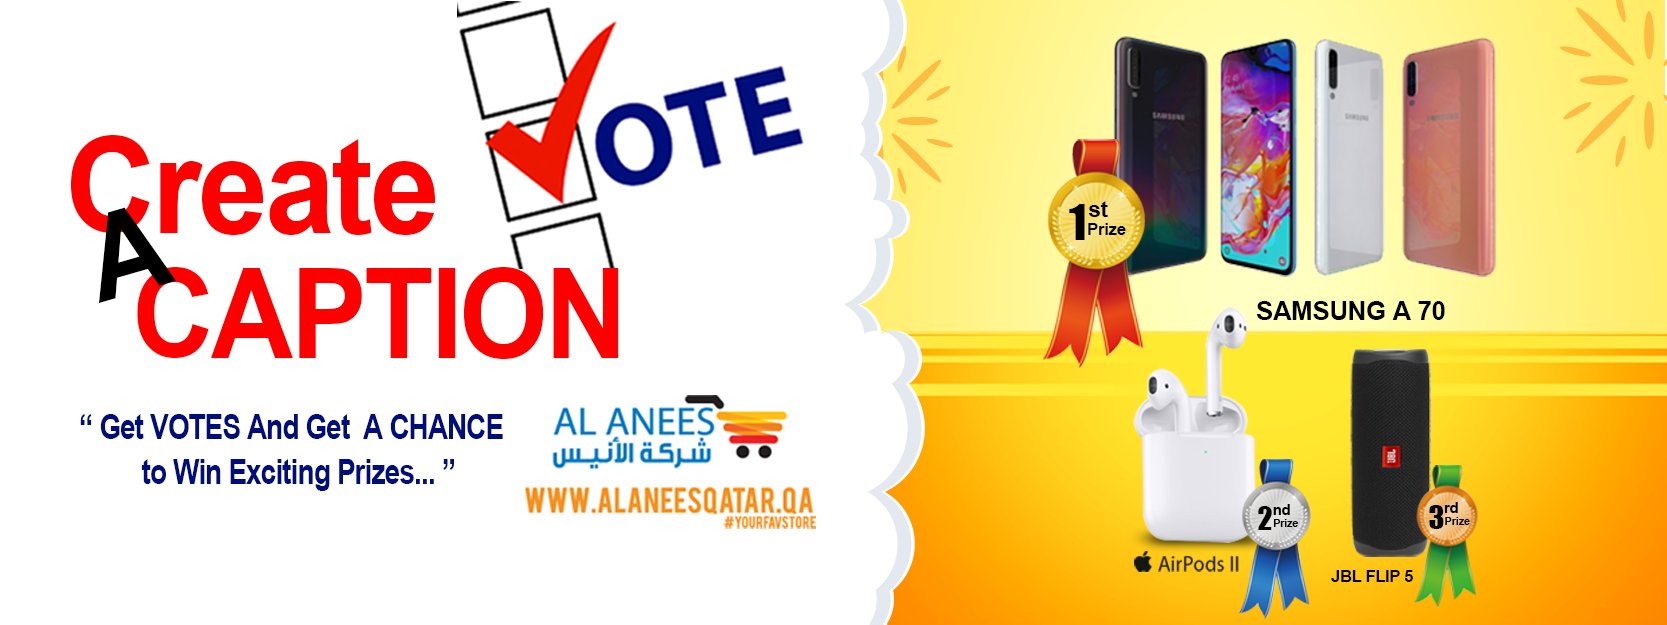 Al Anees Vote & Win Contest